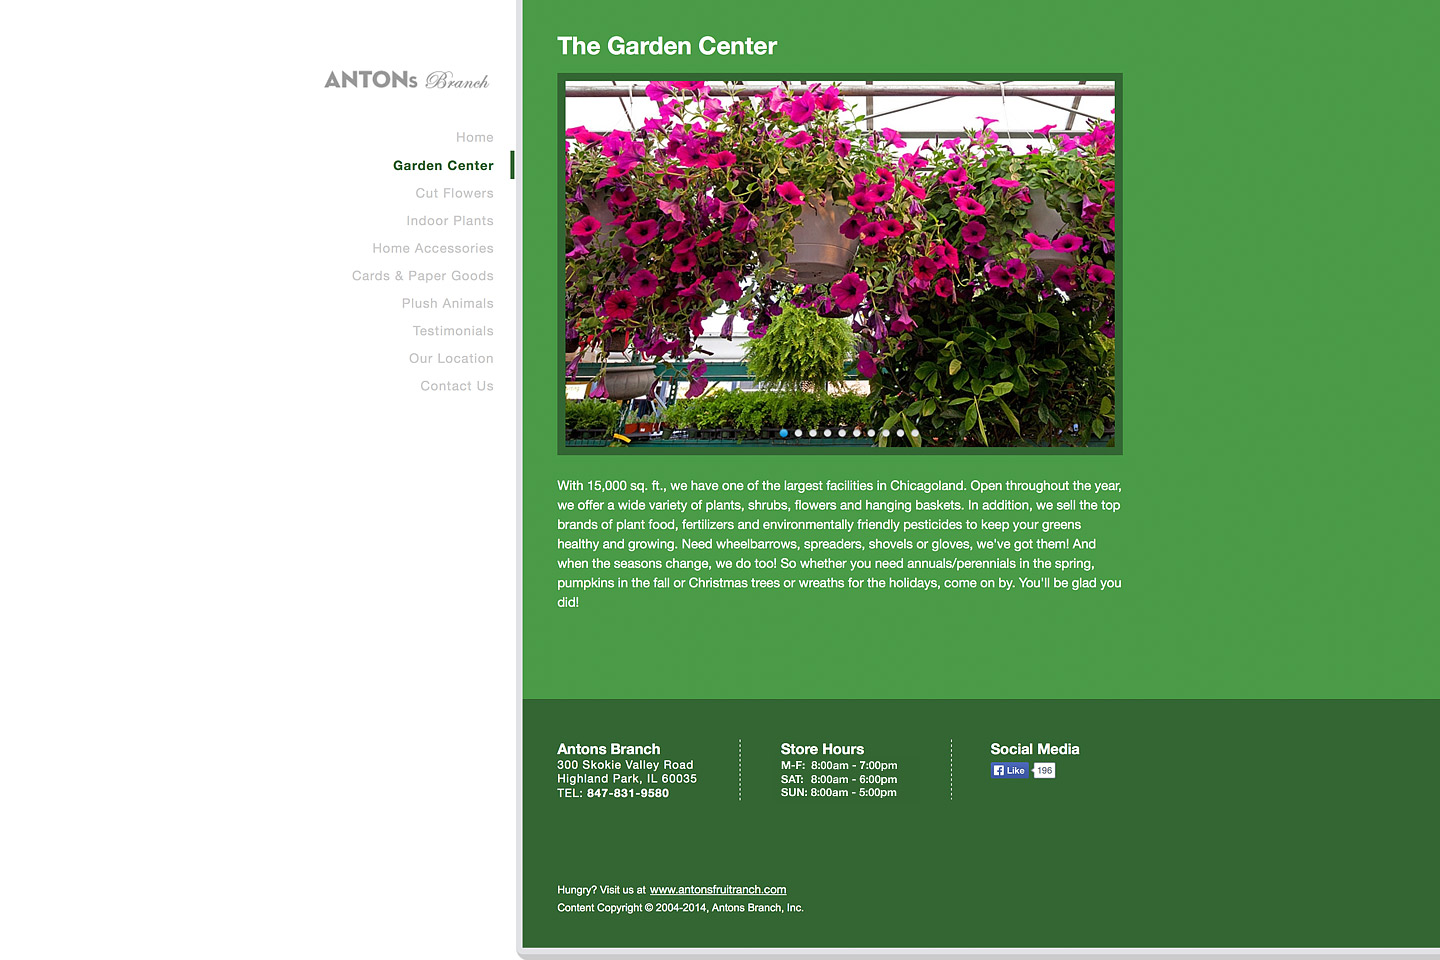 a screen capture of the garden center page, featuring several hanging baskets of purple petunias for sale in the antons branch green house